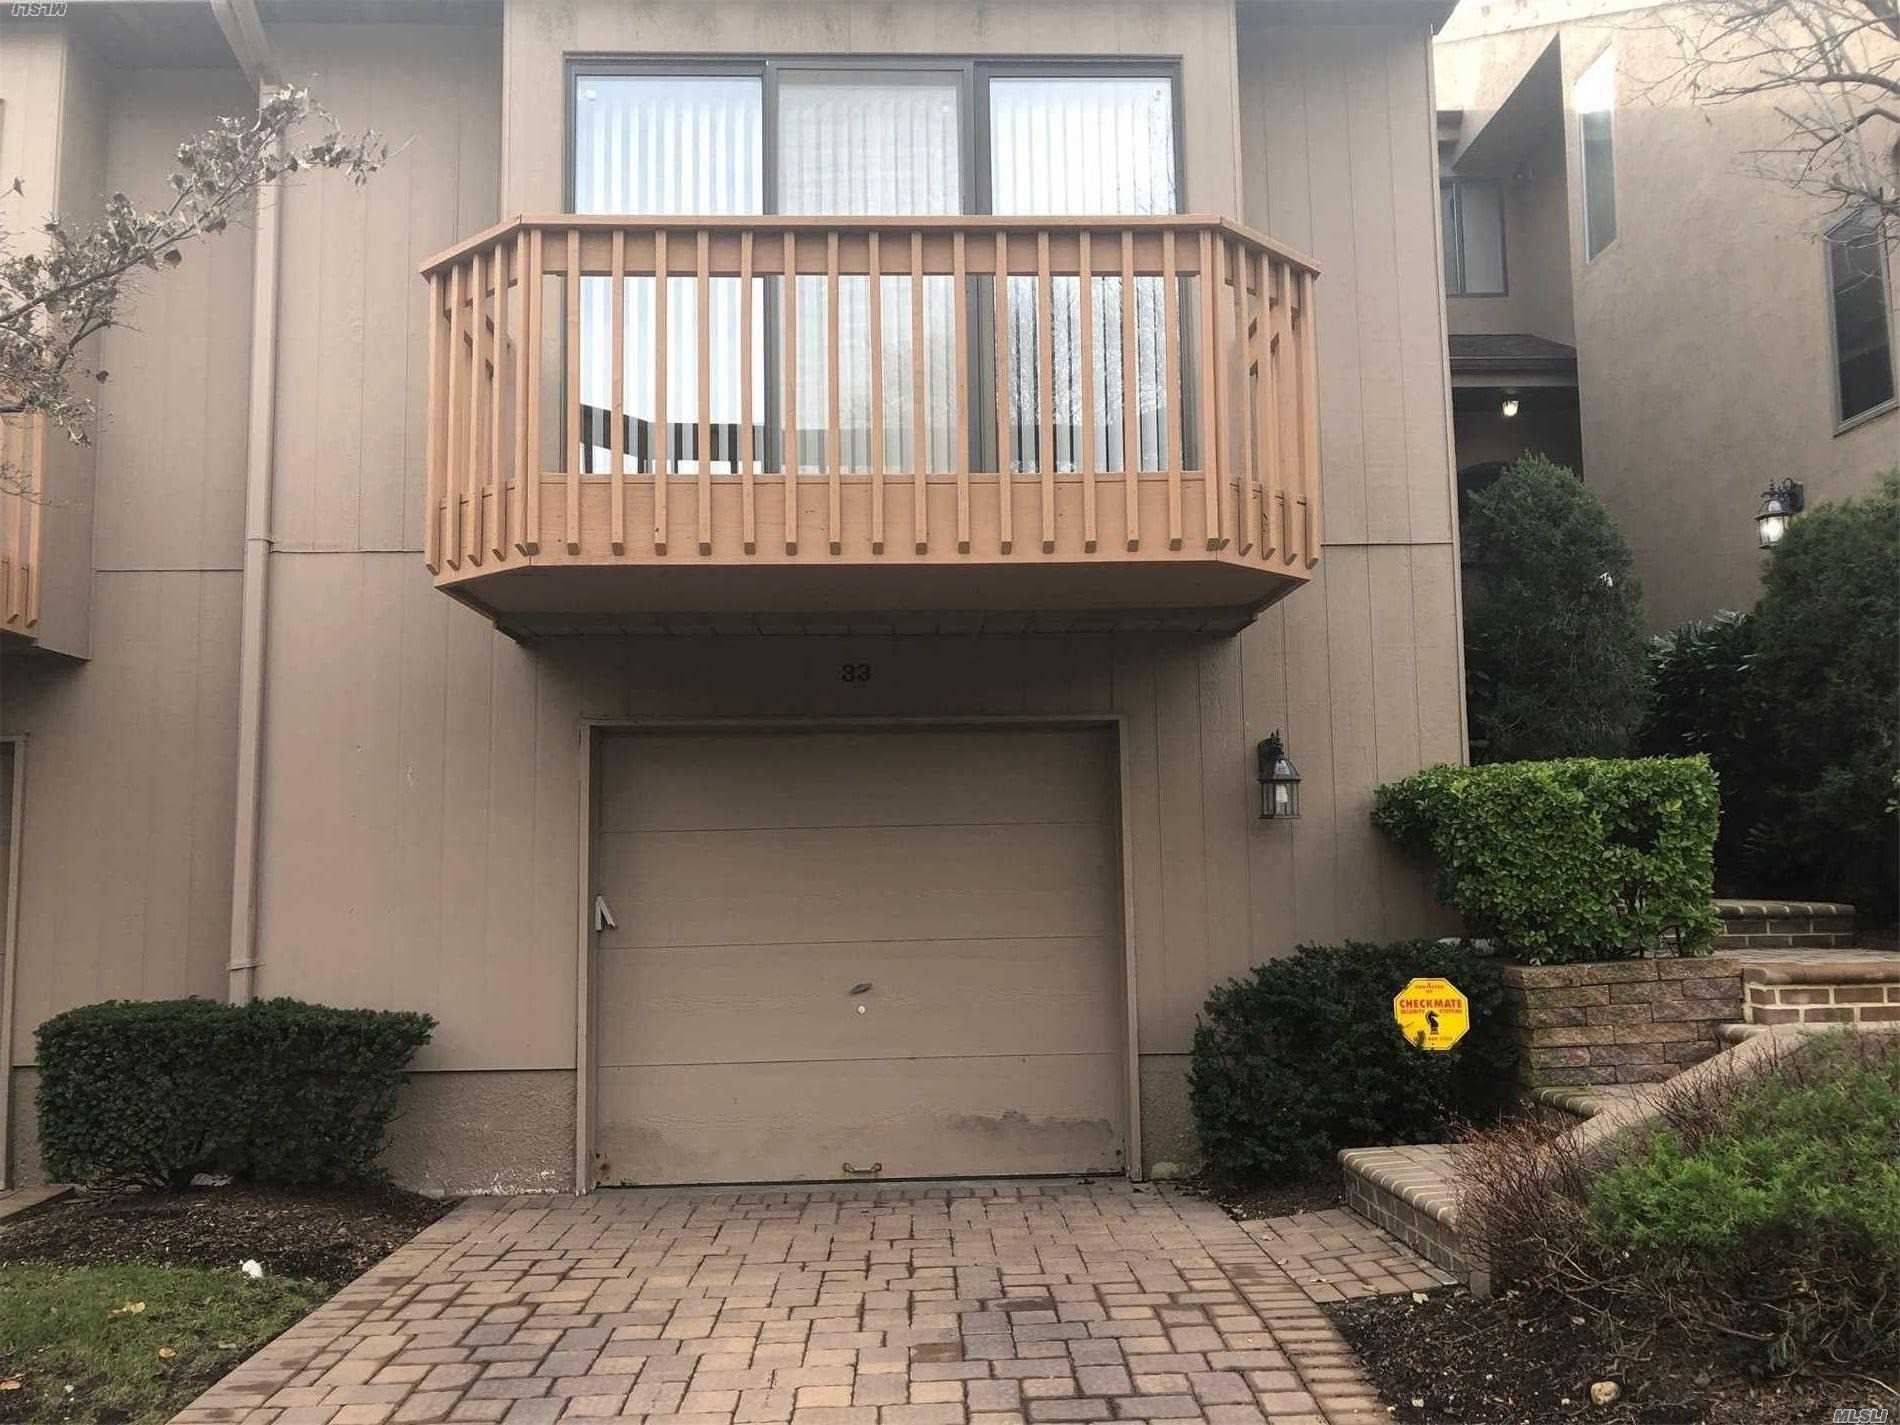 Bright And Sunny, Move-In Condition 3 Br, 2.5 Bth Townhouse. Finished Basement With .5 Bath. Hardwood Floors, Wood Burning Fireplace. Convenient Location Close To Shopping, Restaurants, Transportation. Swimming Pool And Tennis Court On Premises.